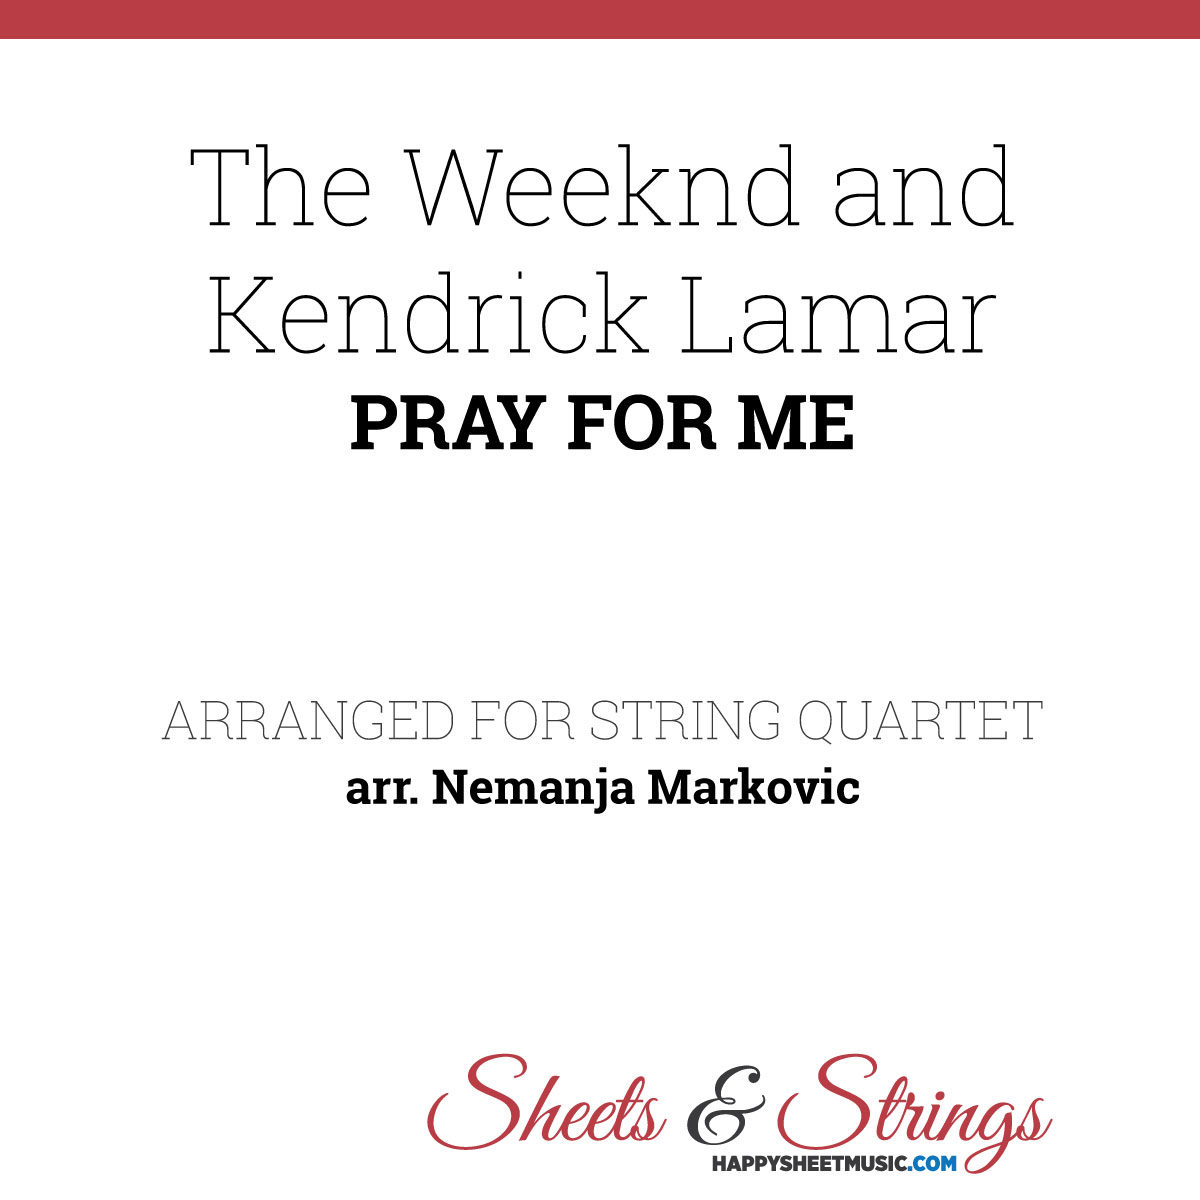 The Weeknd and Kendrick Lamar - Sheet Music for String Quartet - Music Arrangement for String Quartet